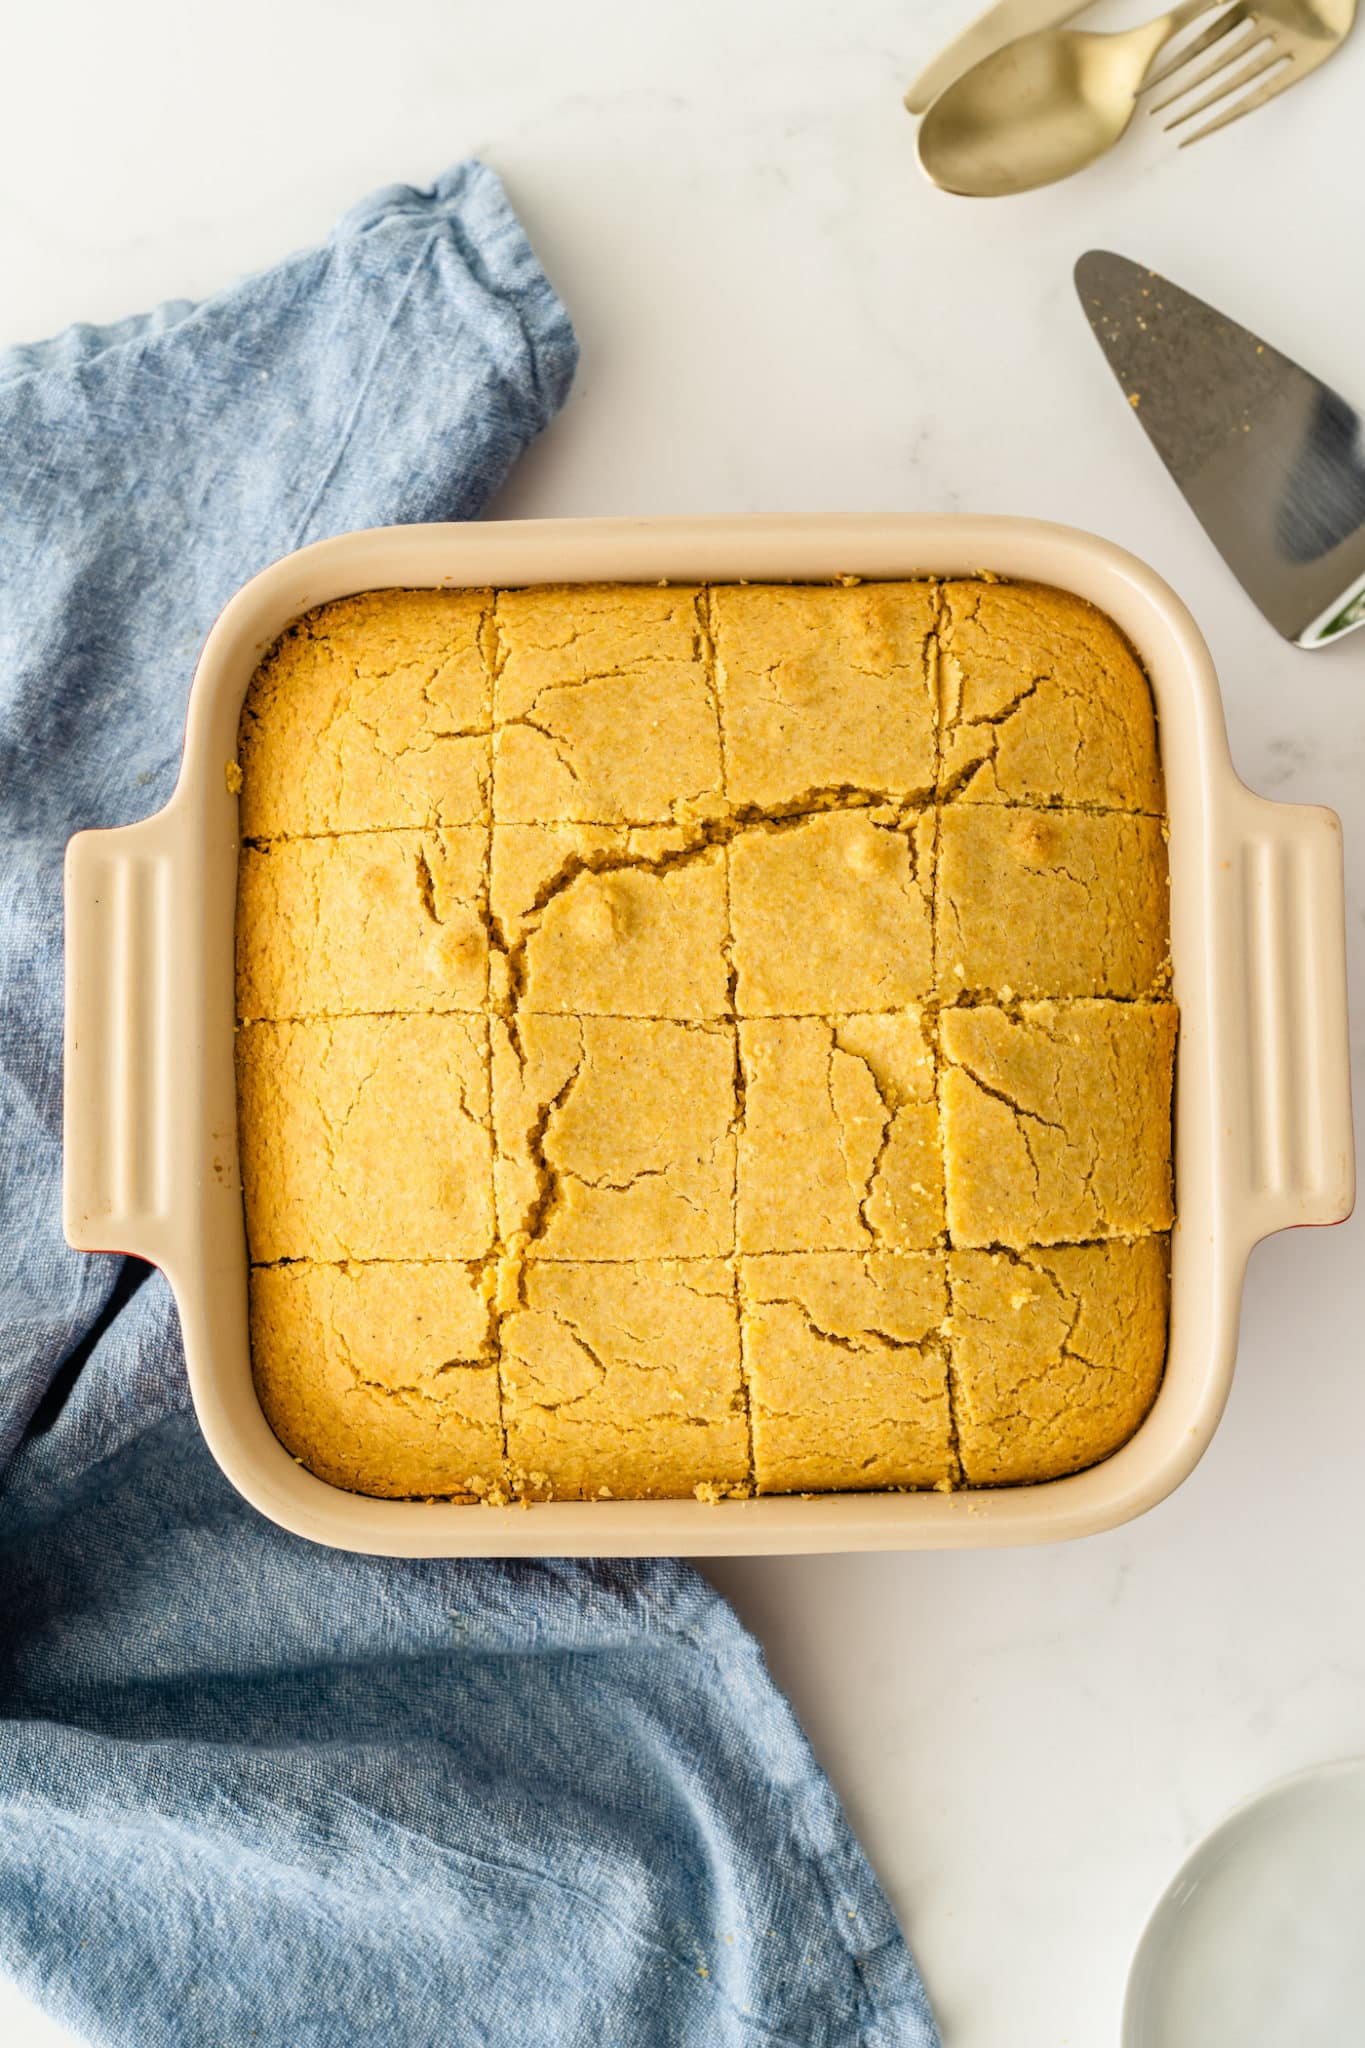 cornbread cooked in a square baking dish cooling on a countertop